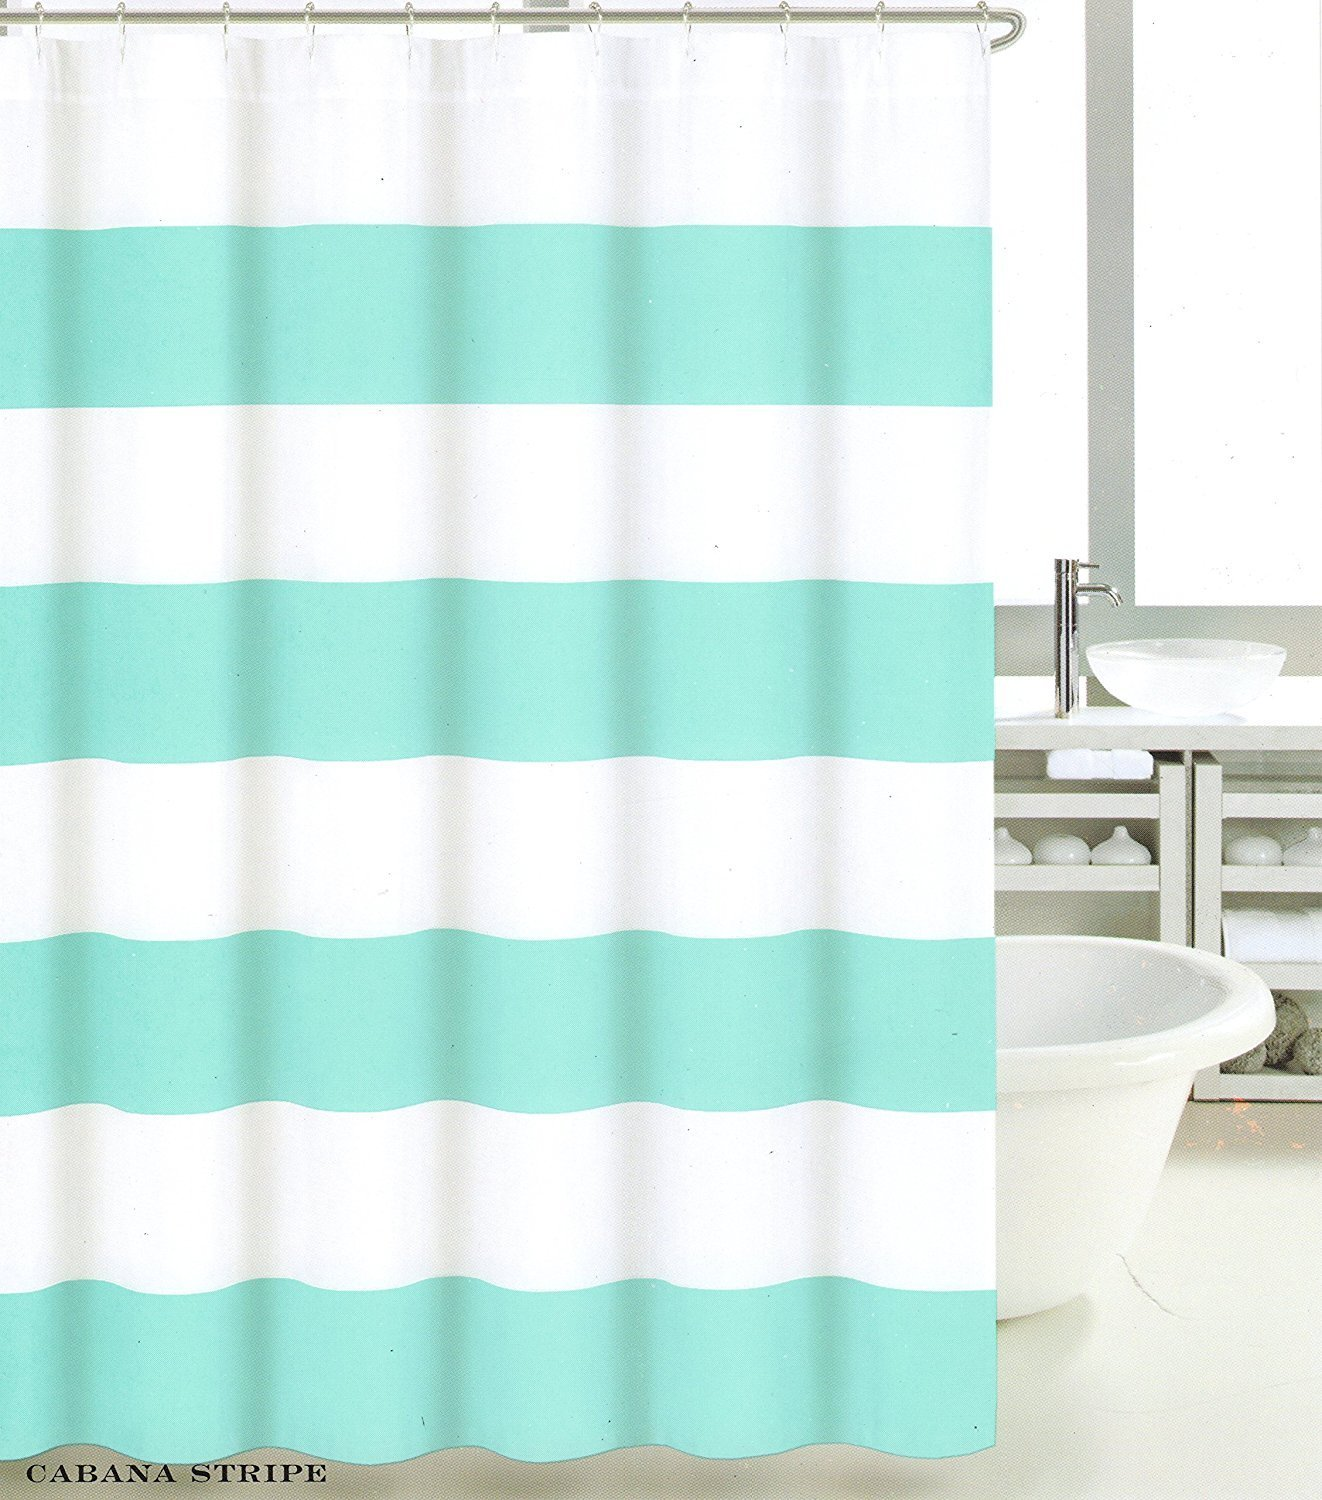 Blue and green striped shower curtain - Memory Home Polyester Shower Curtain Wide Stripes Fabric Shower Curtain Turquoise Navy Blue Beige 66x72inch